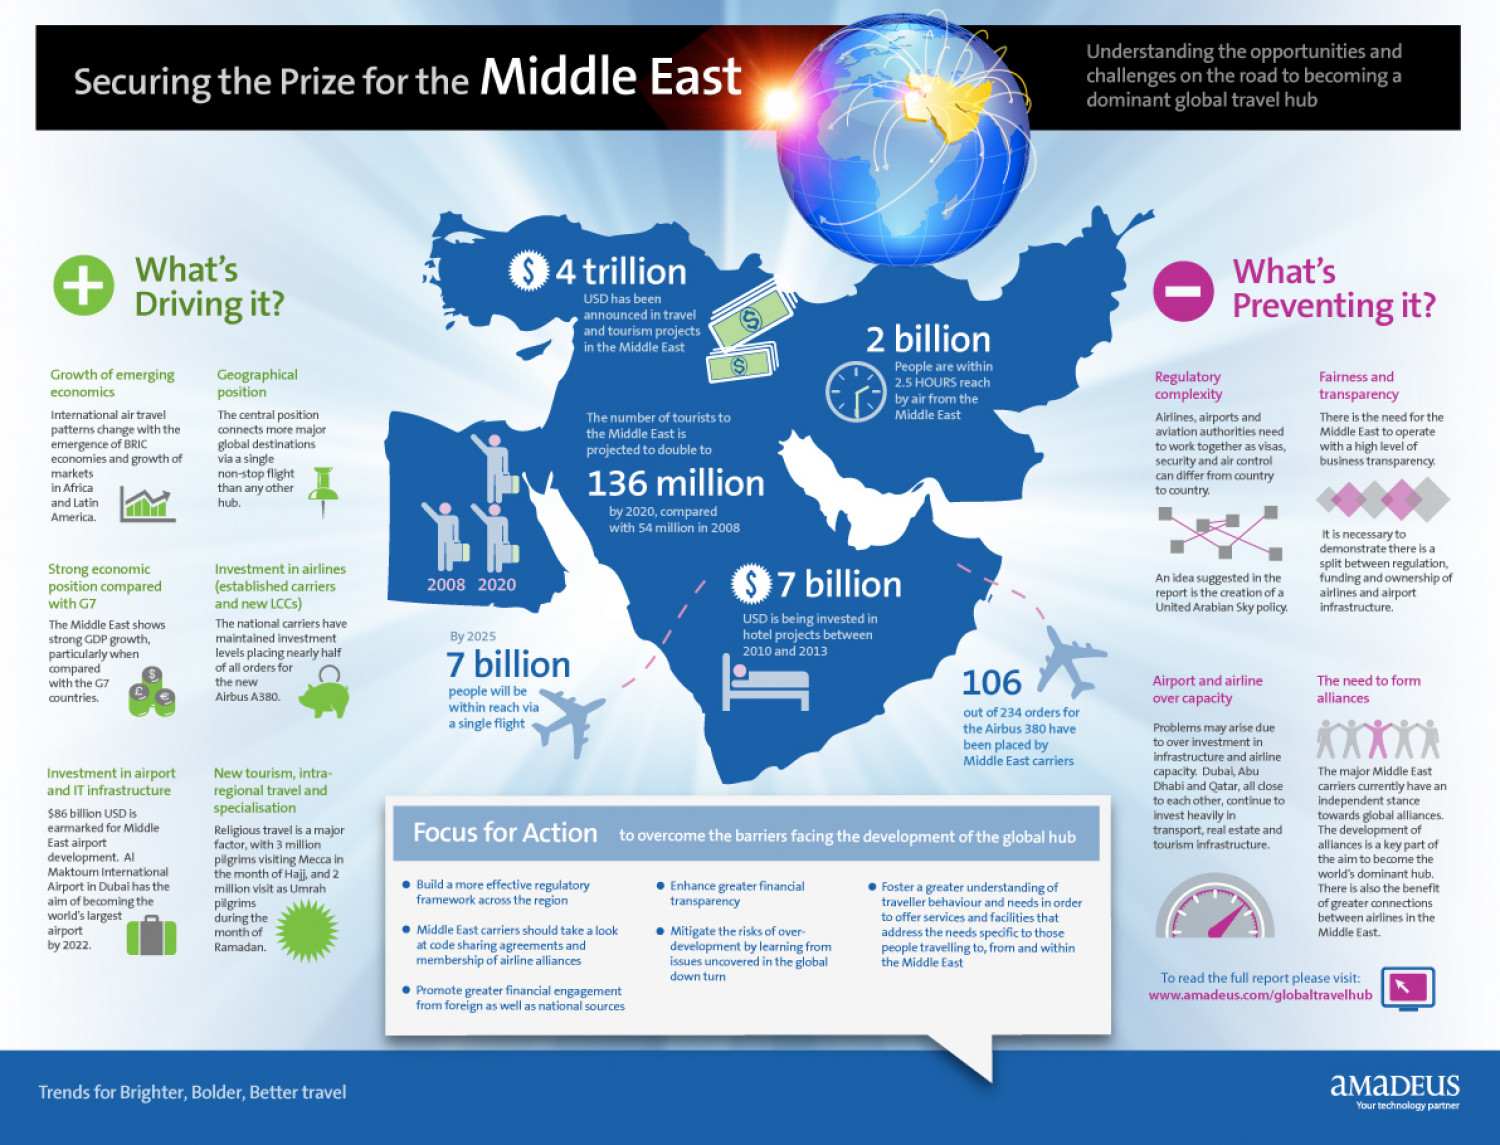 Securing the Prize for the Middle East  Infographic